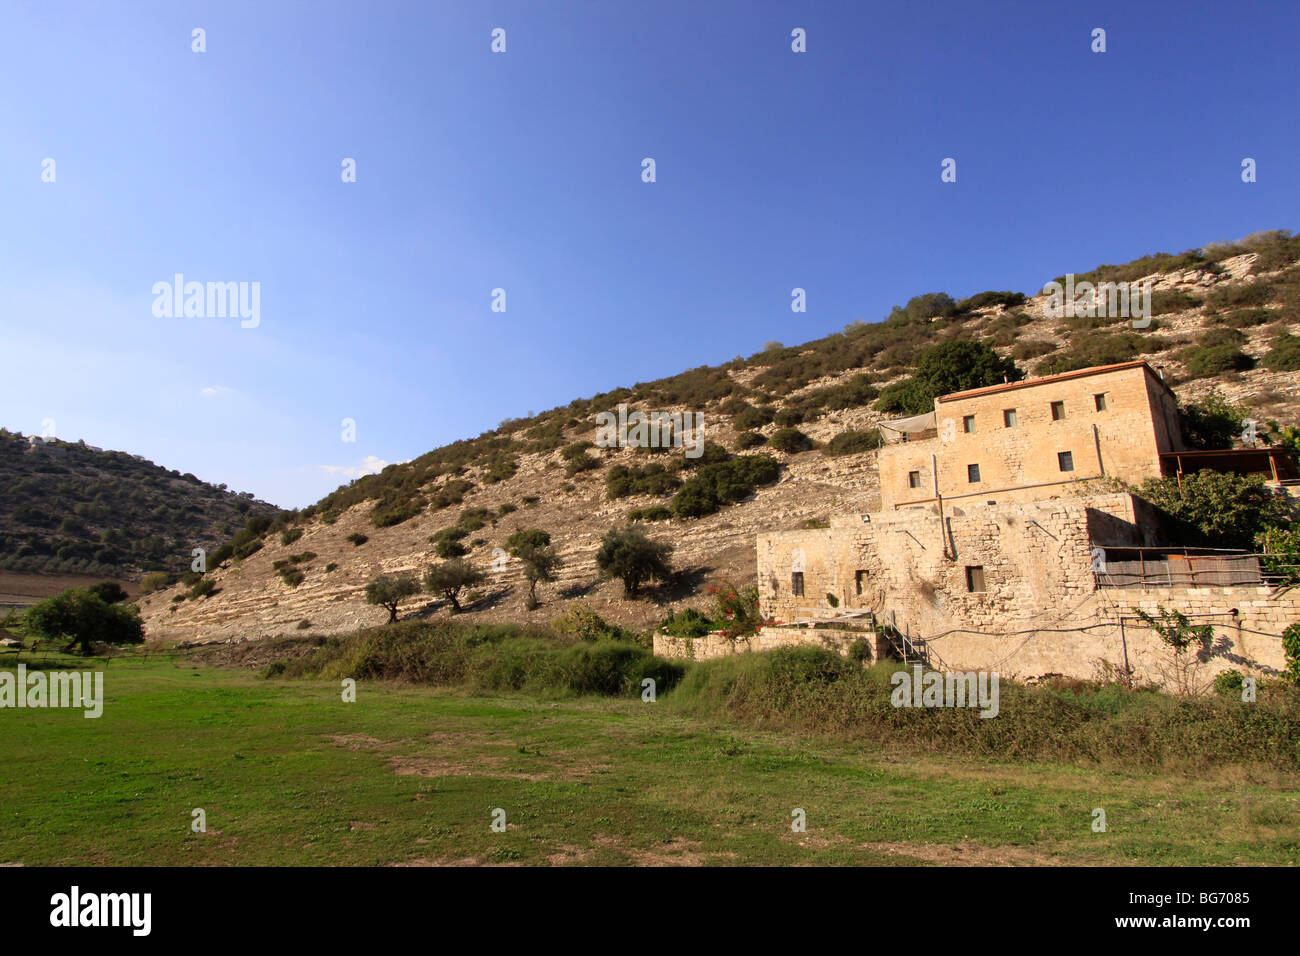 Israel, Lower Galilee, the old Carmelite monks flour mill in Wadi Zippori Stock Photo